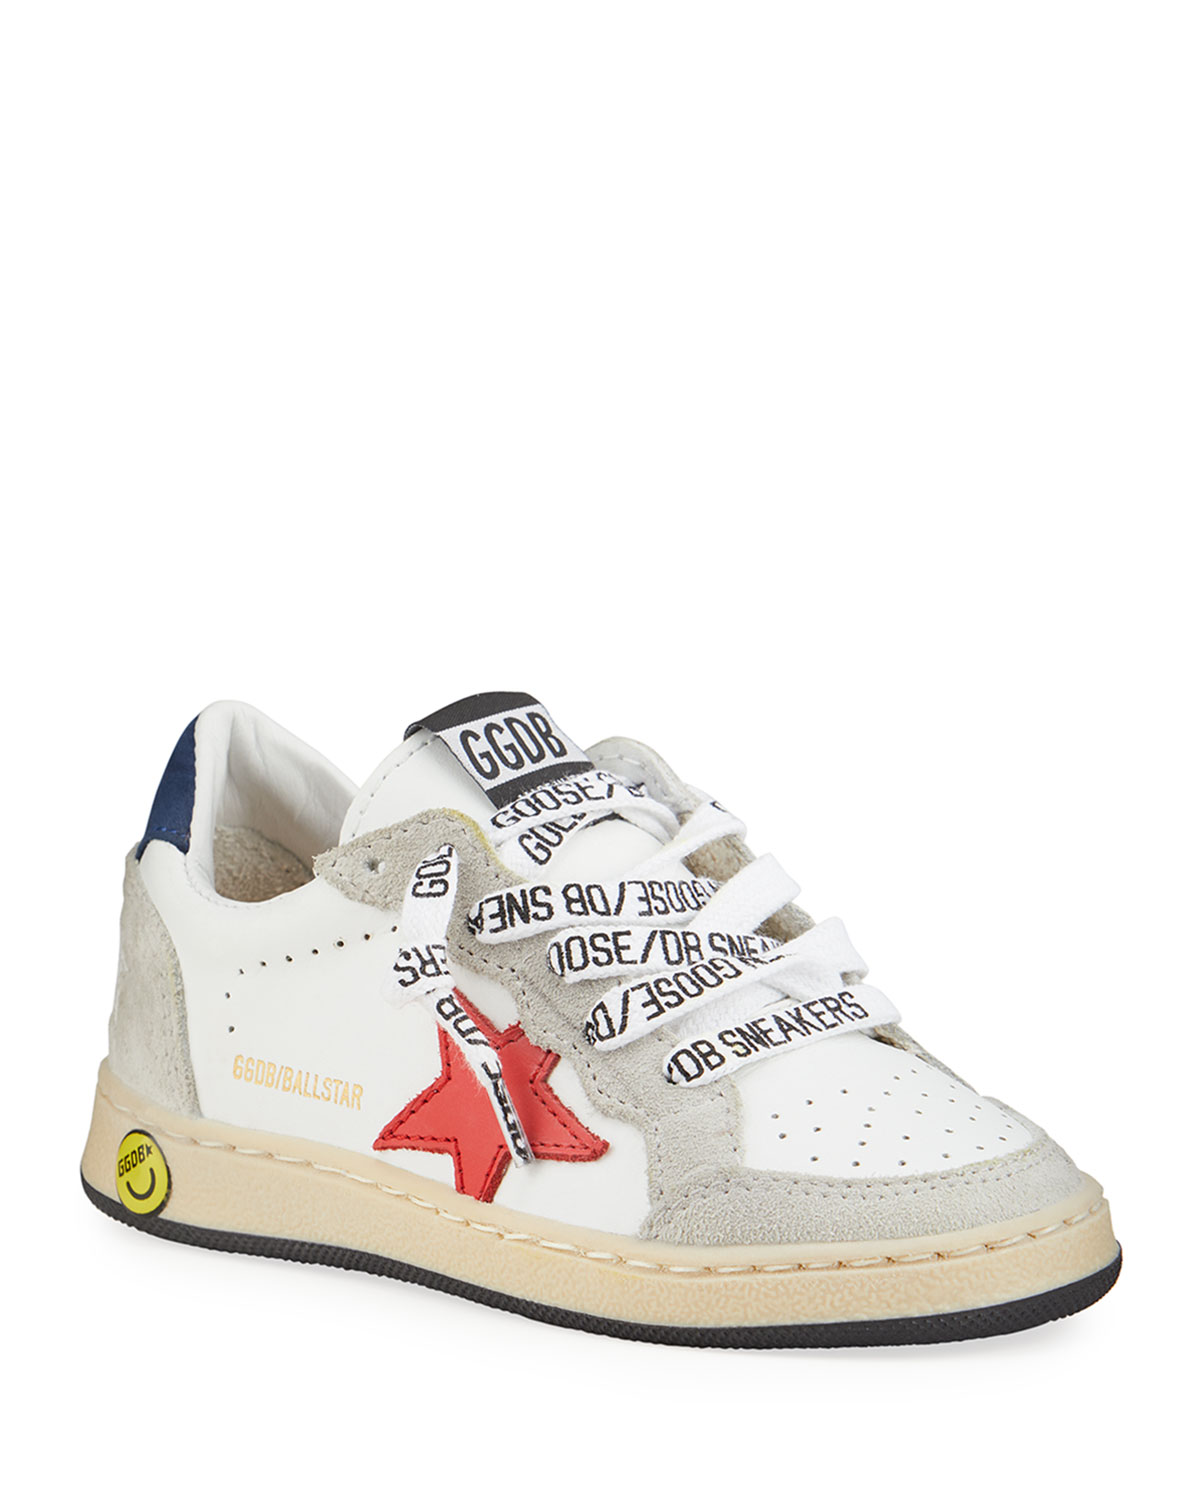 Golden Goose BALL STAR LEATHER LOW-TOP SNEAKERS, KIDS